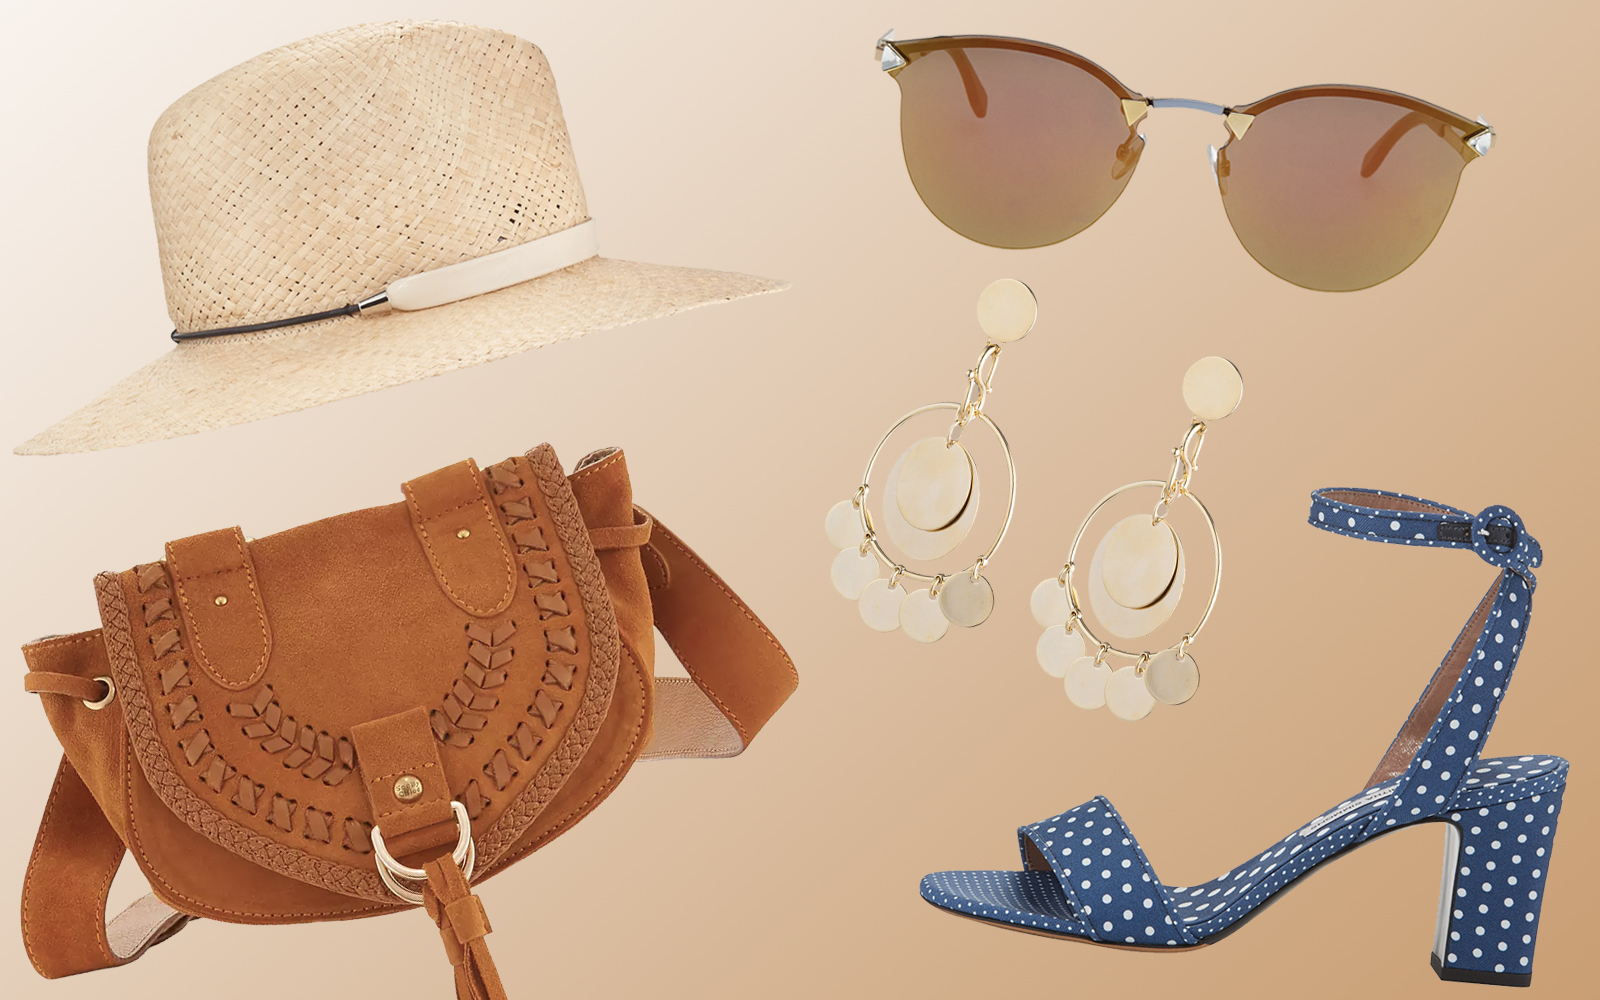 Neiman Marcus's Sale Has Everything You Need for a Spring Vacation